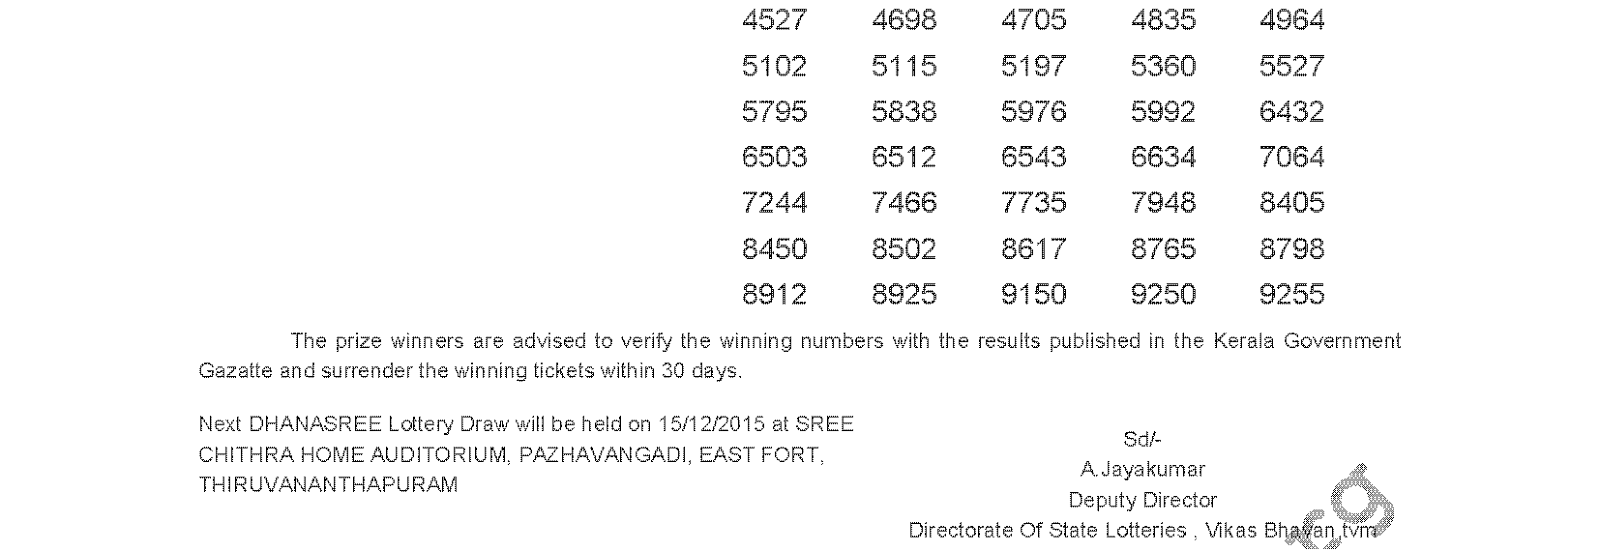 DHANASREE Lottery DS 215 Result 08-12-2015